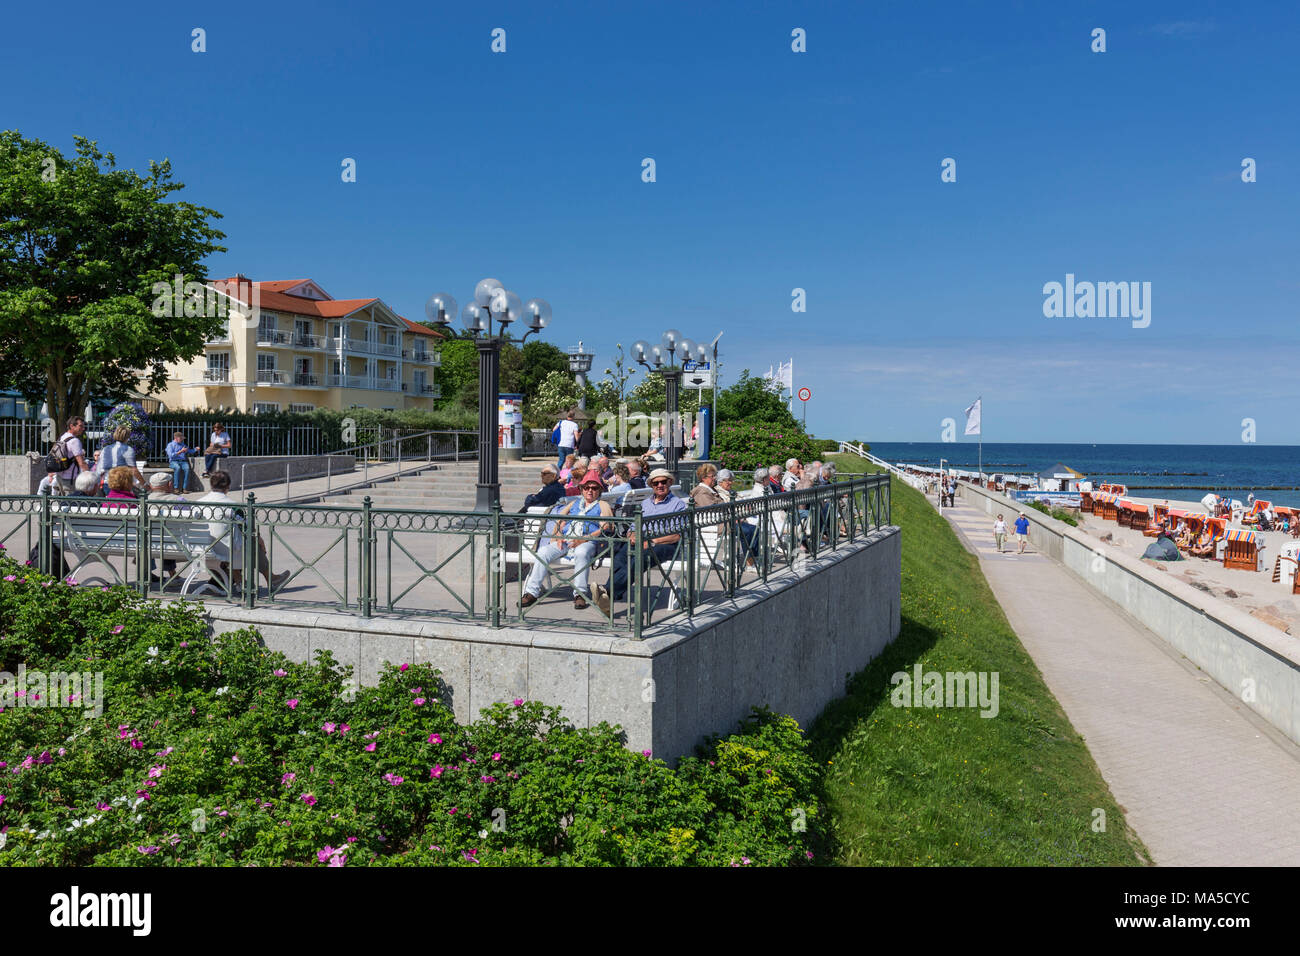 Beach promenade at the pier, Seebad Kühlungsborn-Ost, district of Rostock, - Stock Image